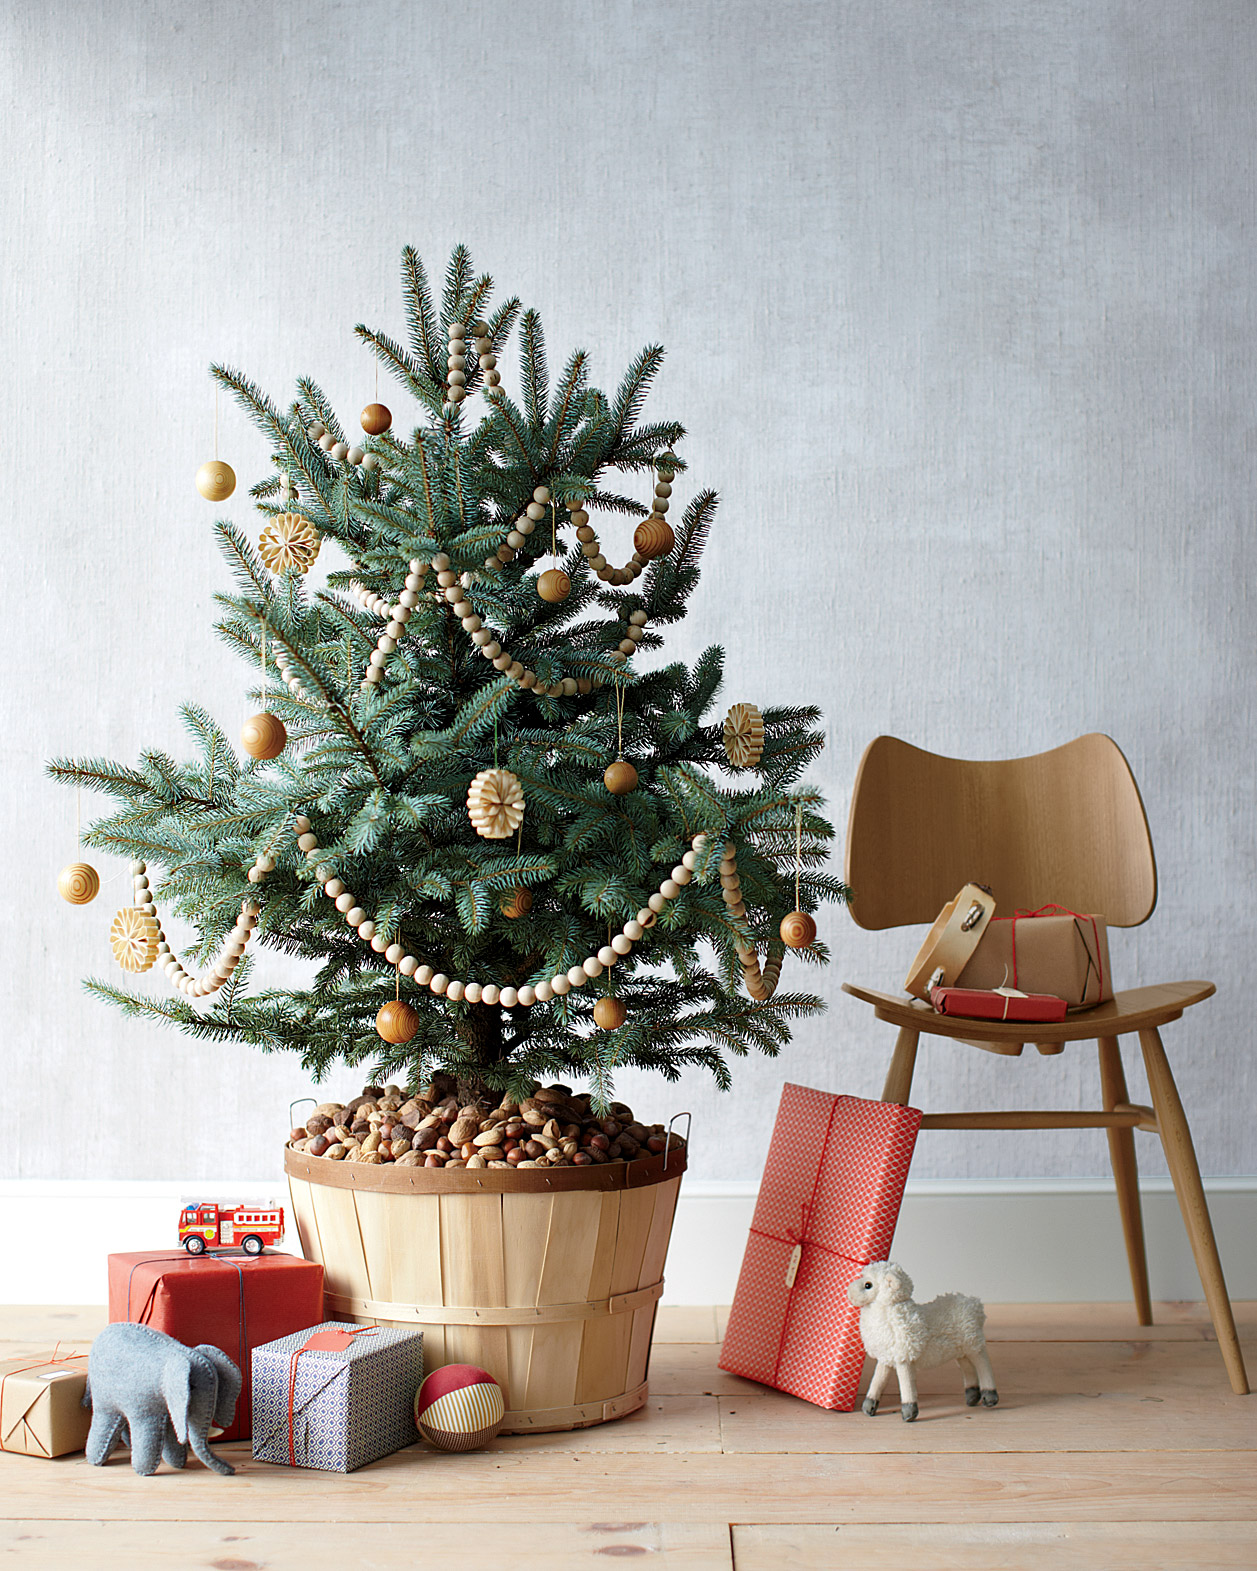 Learn How to Keep Your Christmas Tree Fresh for the Entire Month of December